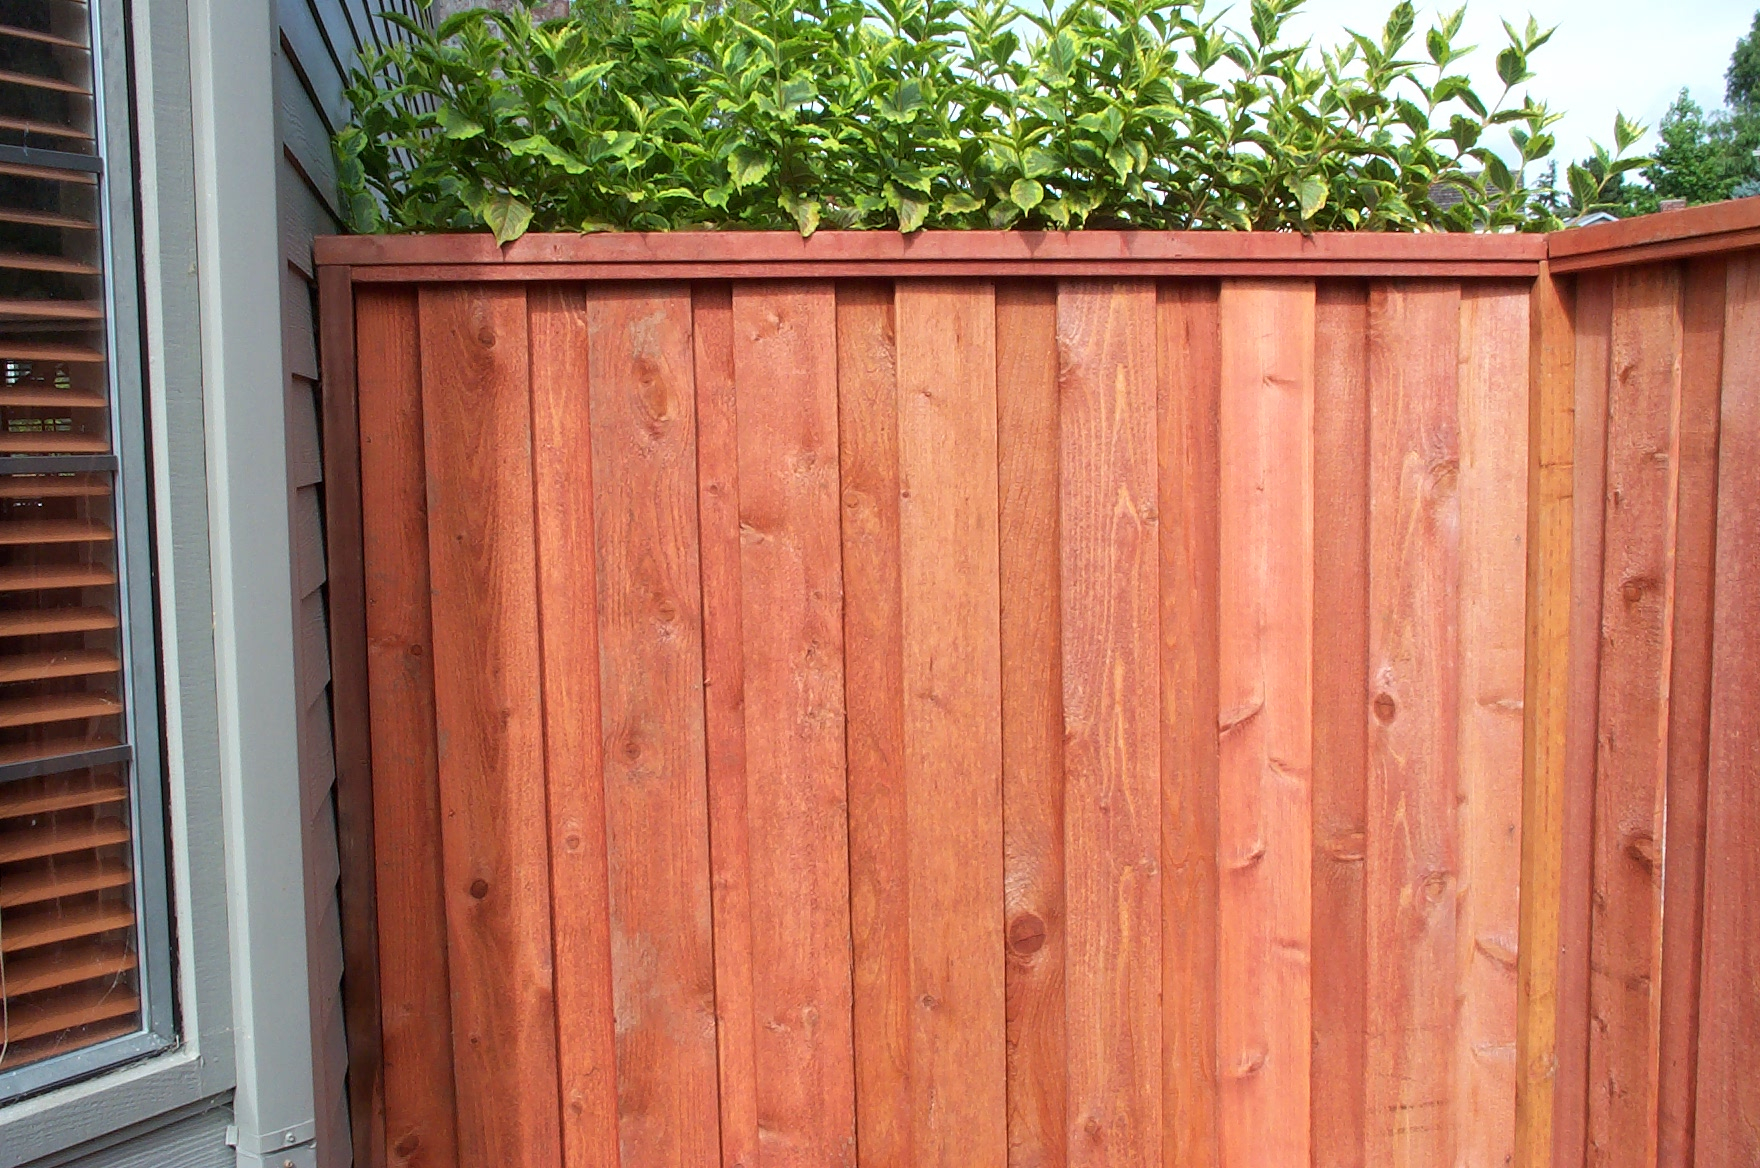 Best Fence Stain Ideas Cole Papers Design Use The Fence Stain Ideas with regard to size 1760 X 1168